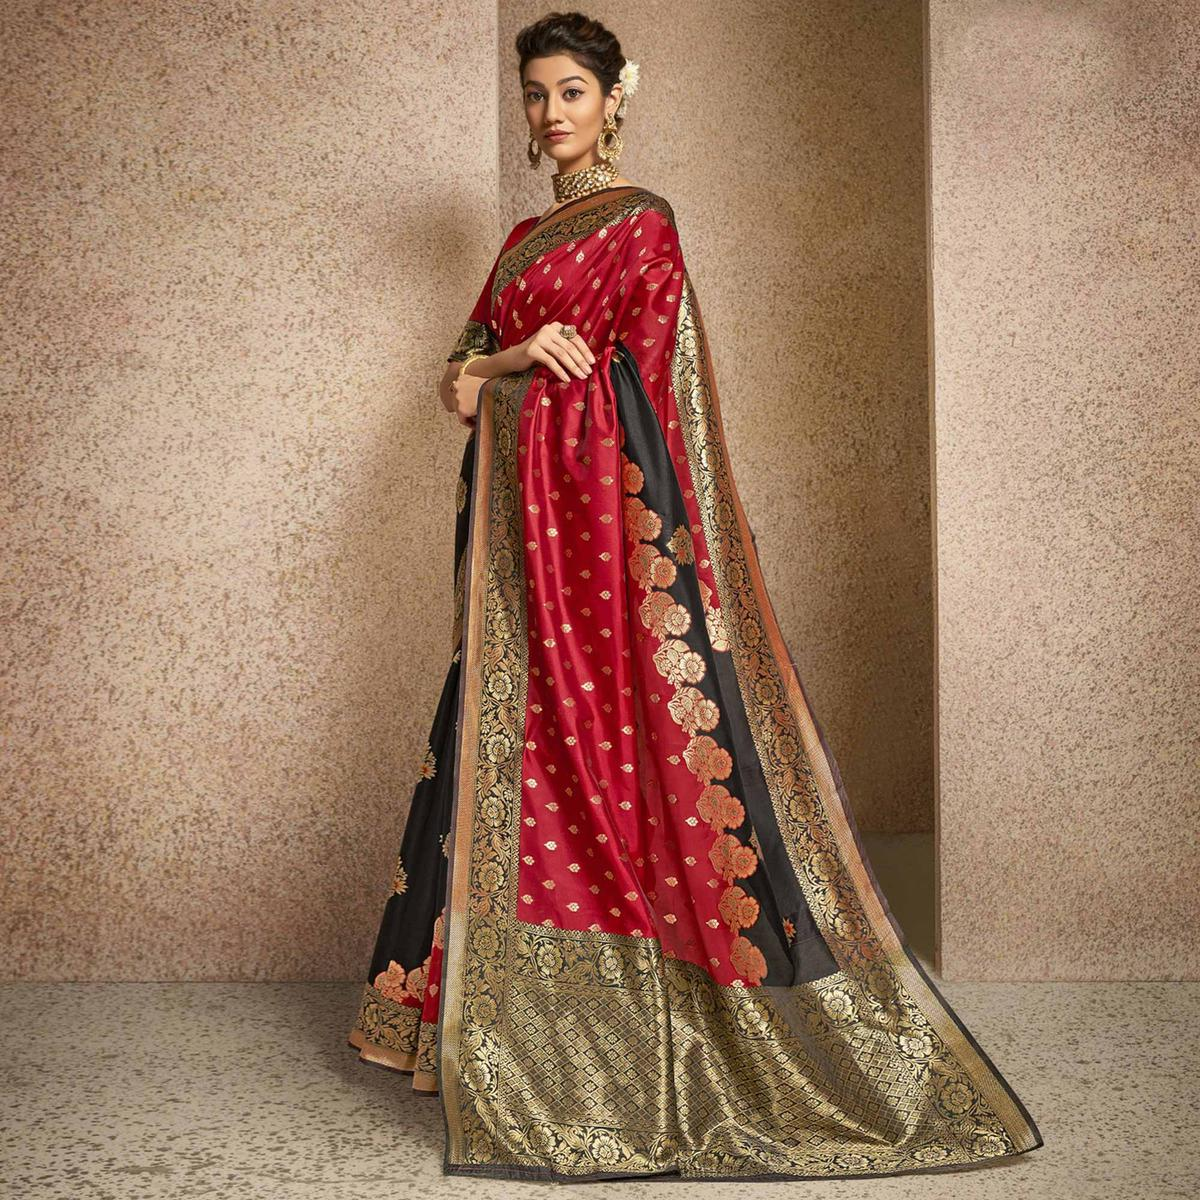 Triveni Black & Red Colored Jacquard Silk Party Wear Jacquard Woven Saree With Blouse Piece